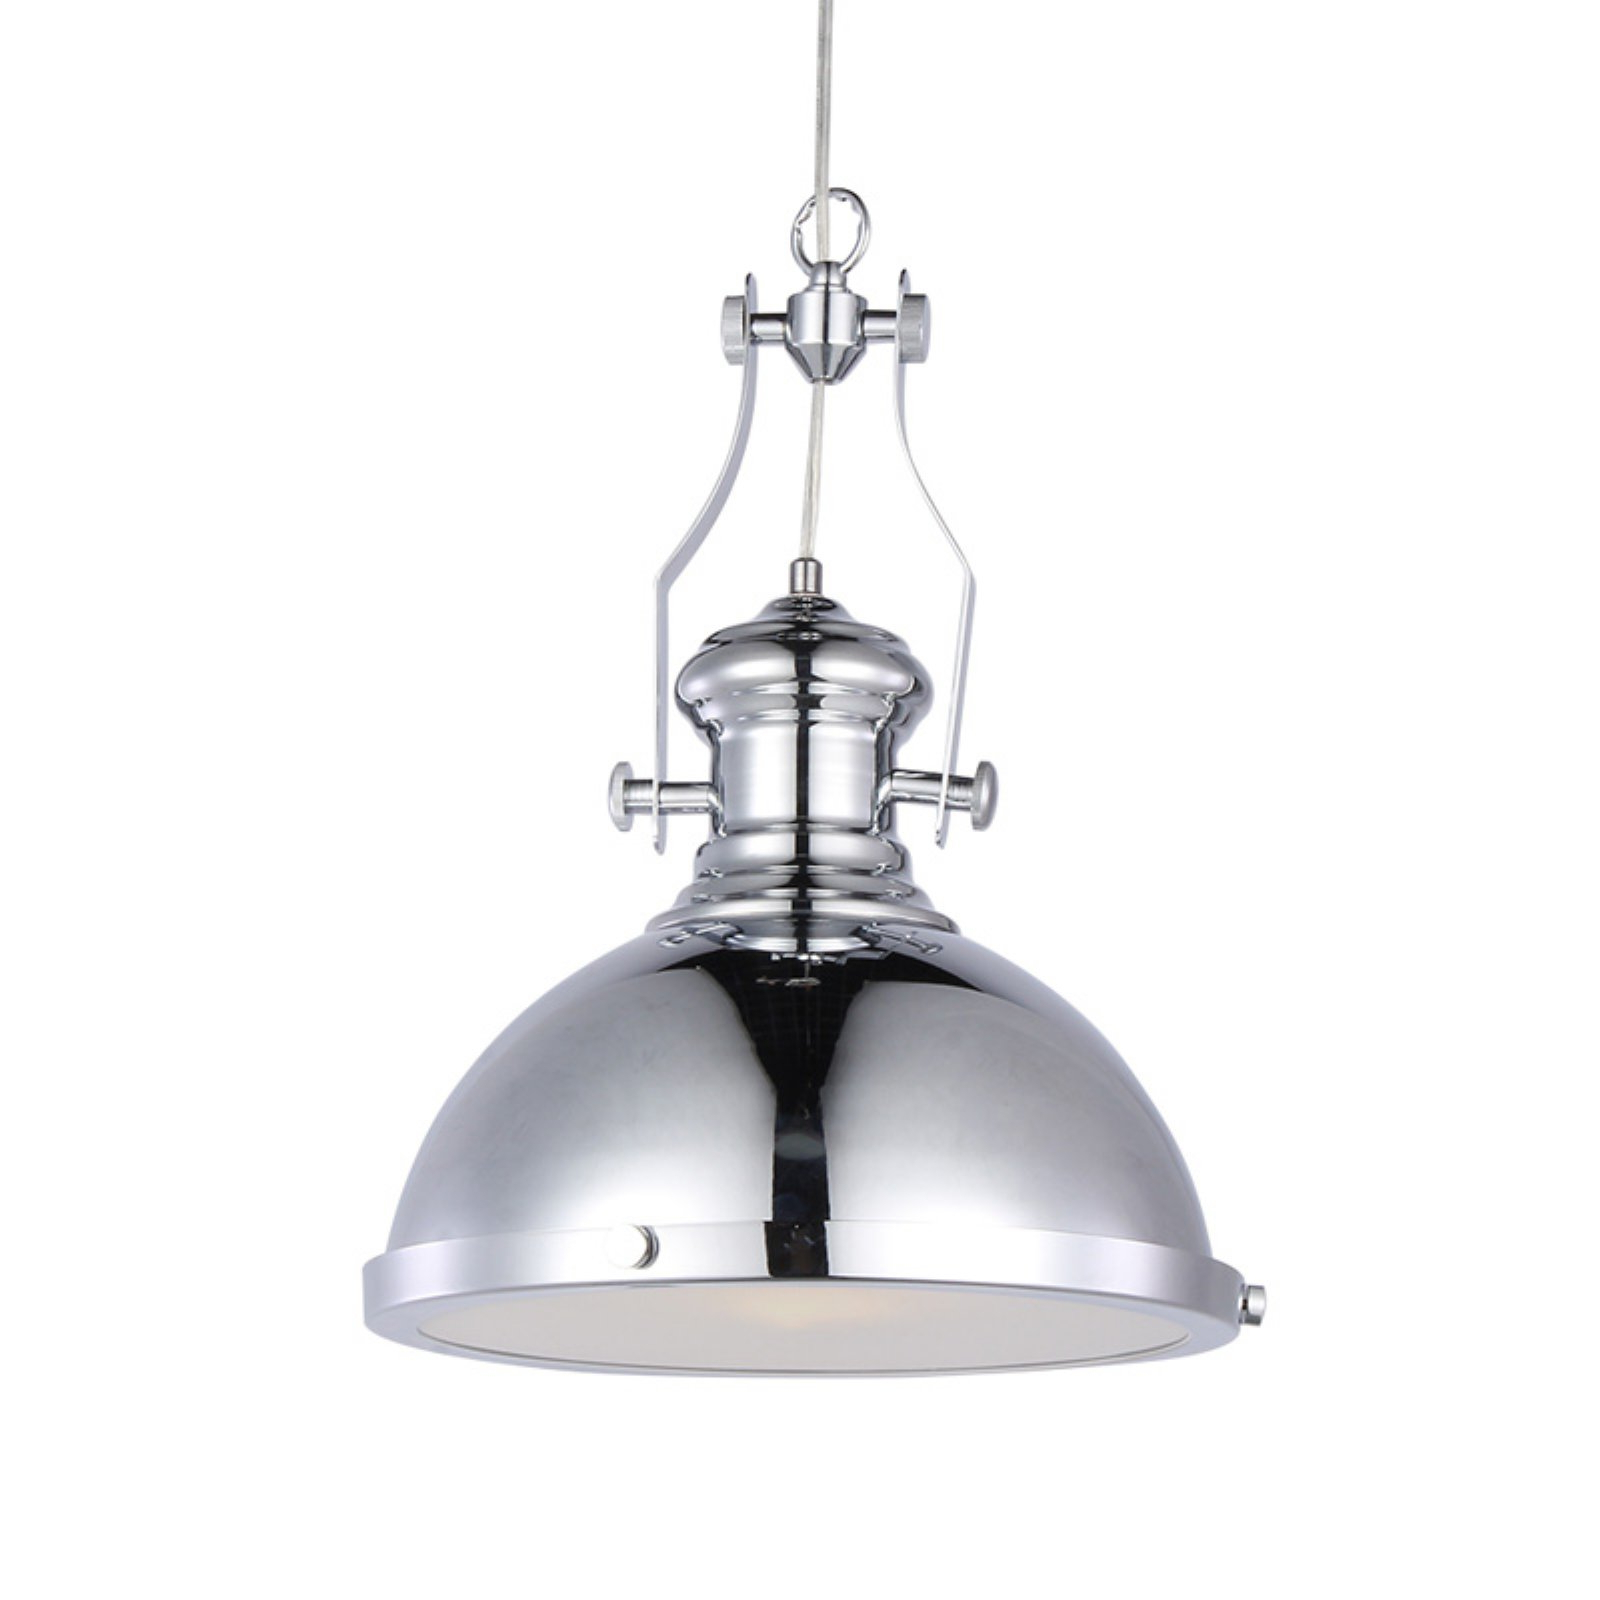 Fashionable Warehouse Of Tiffany Celone Wty045 Pendant Light (View 13 of 25)